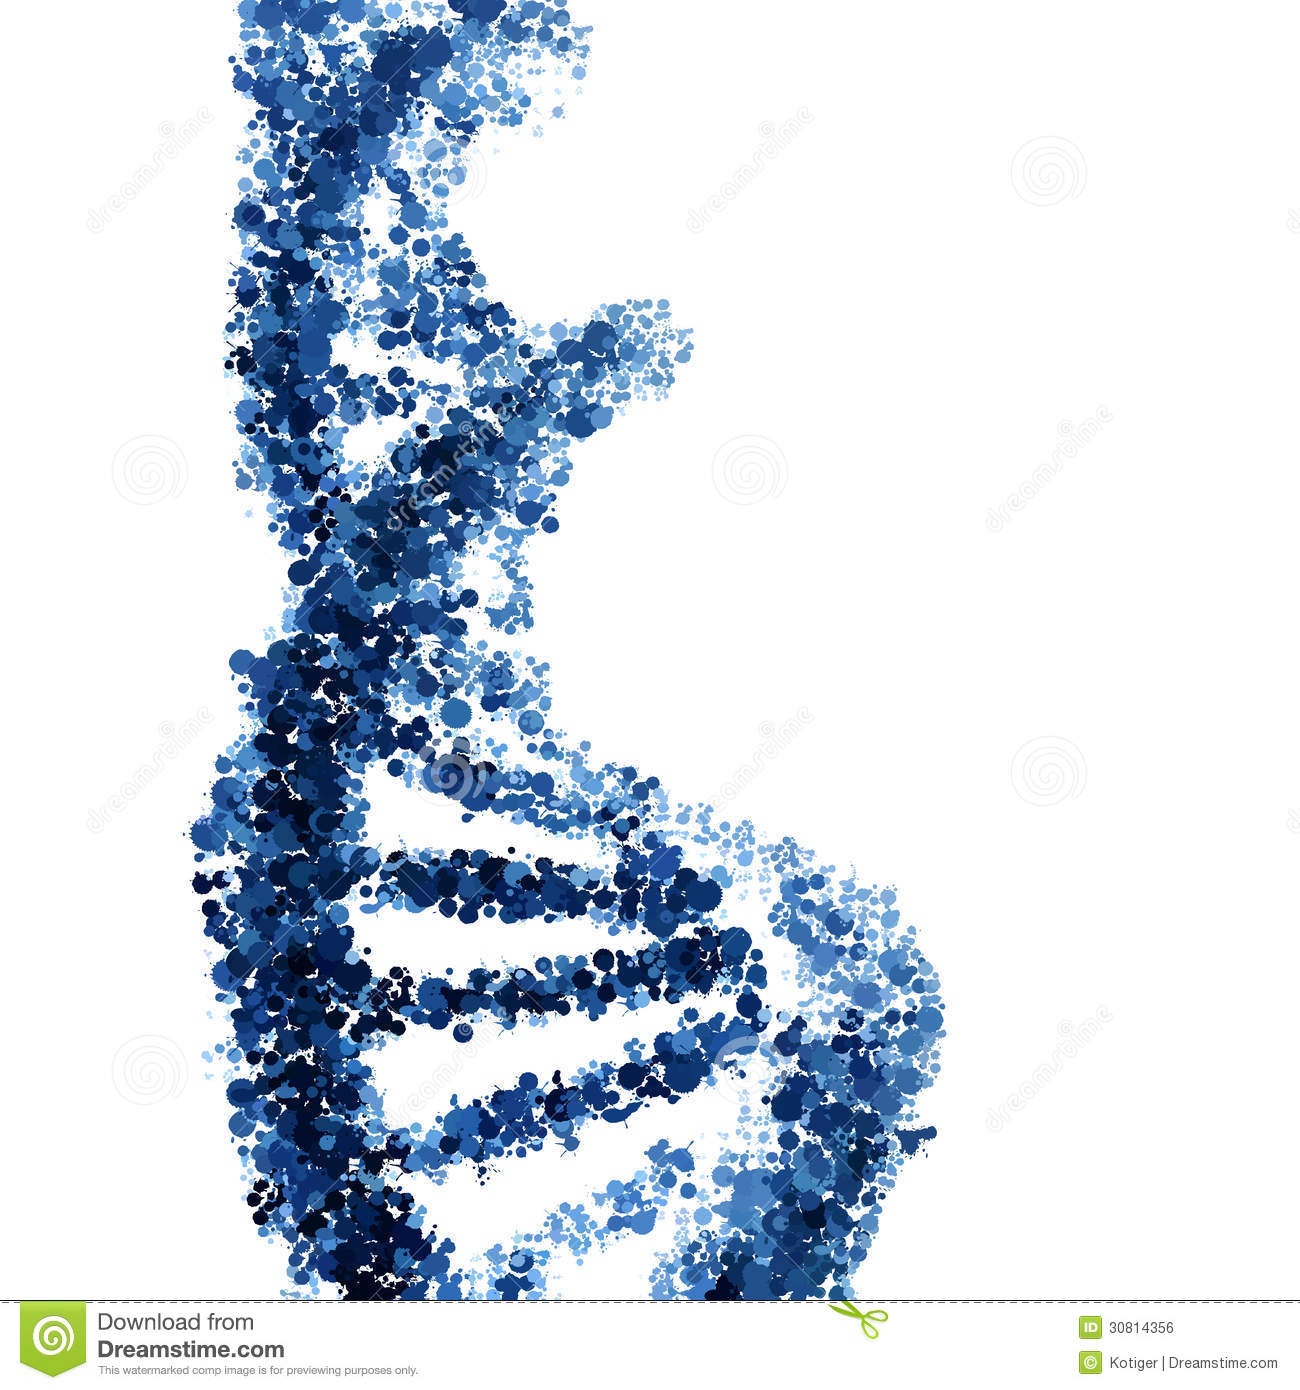 Dna Model Wallpaper: DNA Helix Isolated On White Royalty Free Stock Image